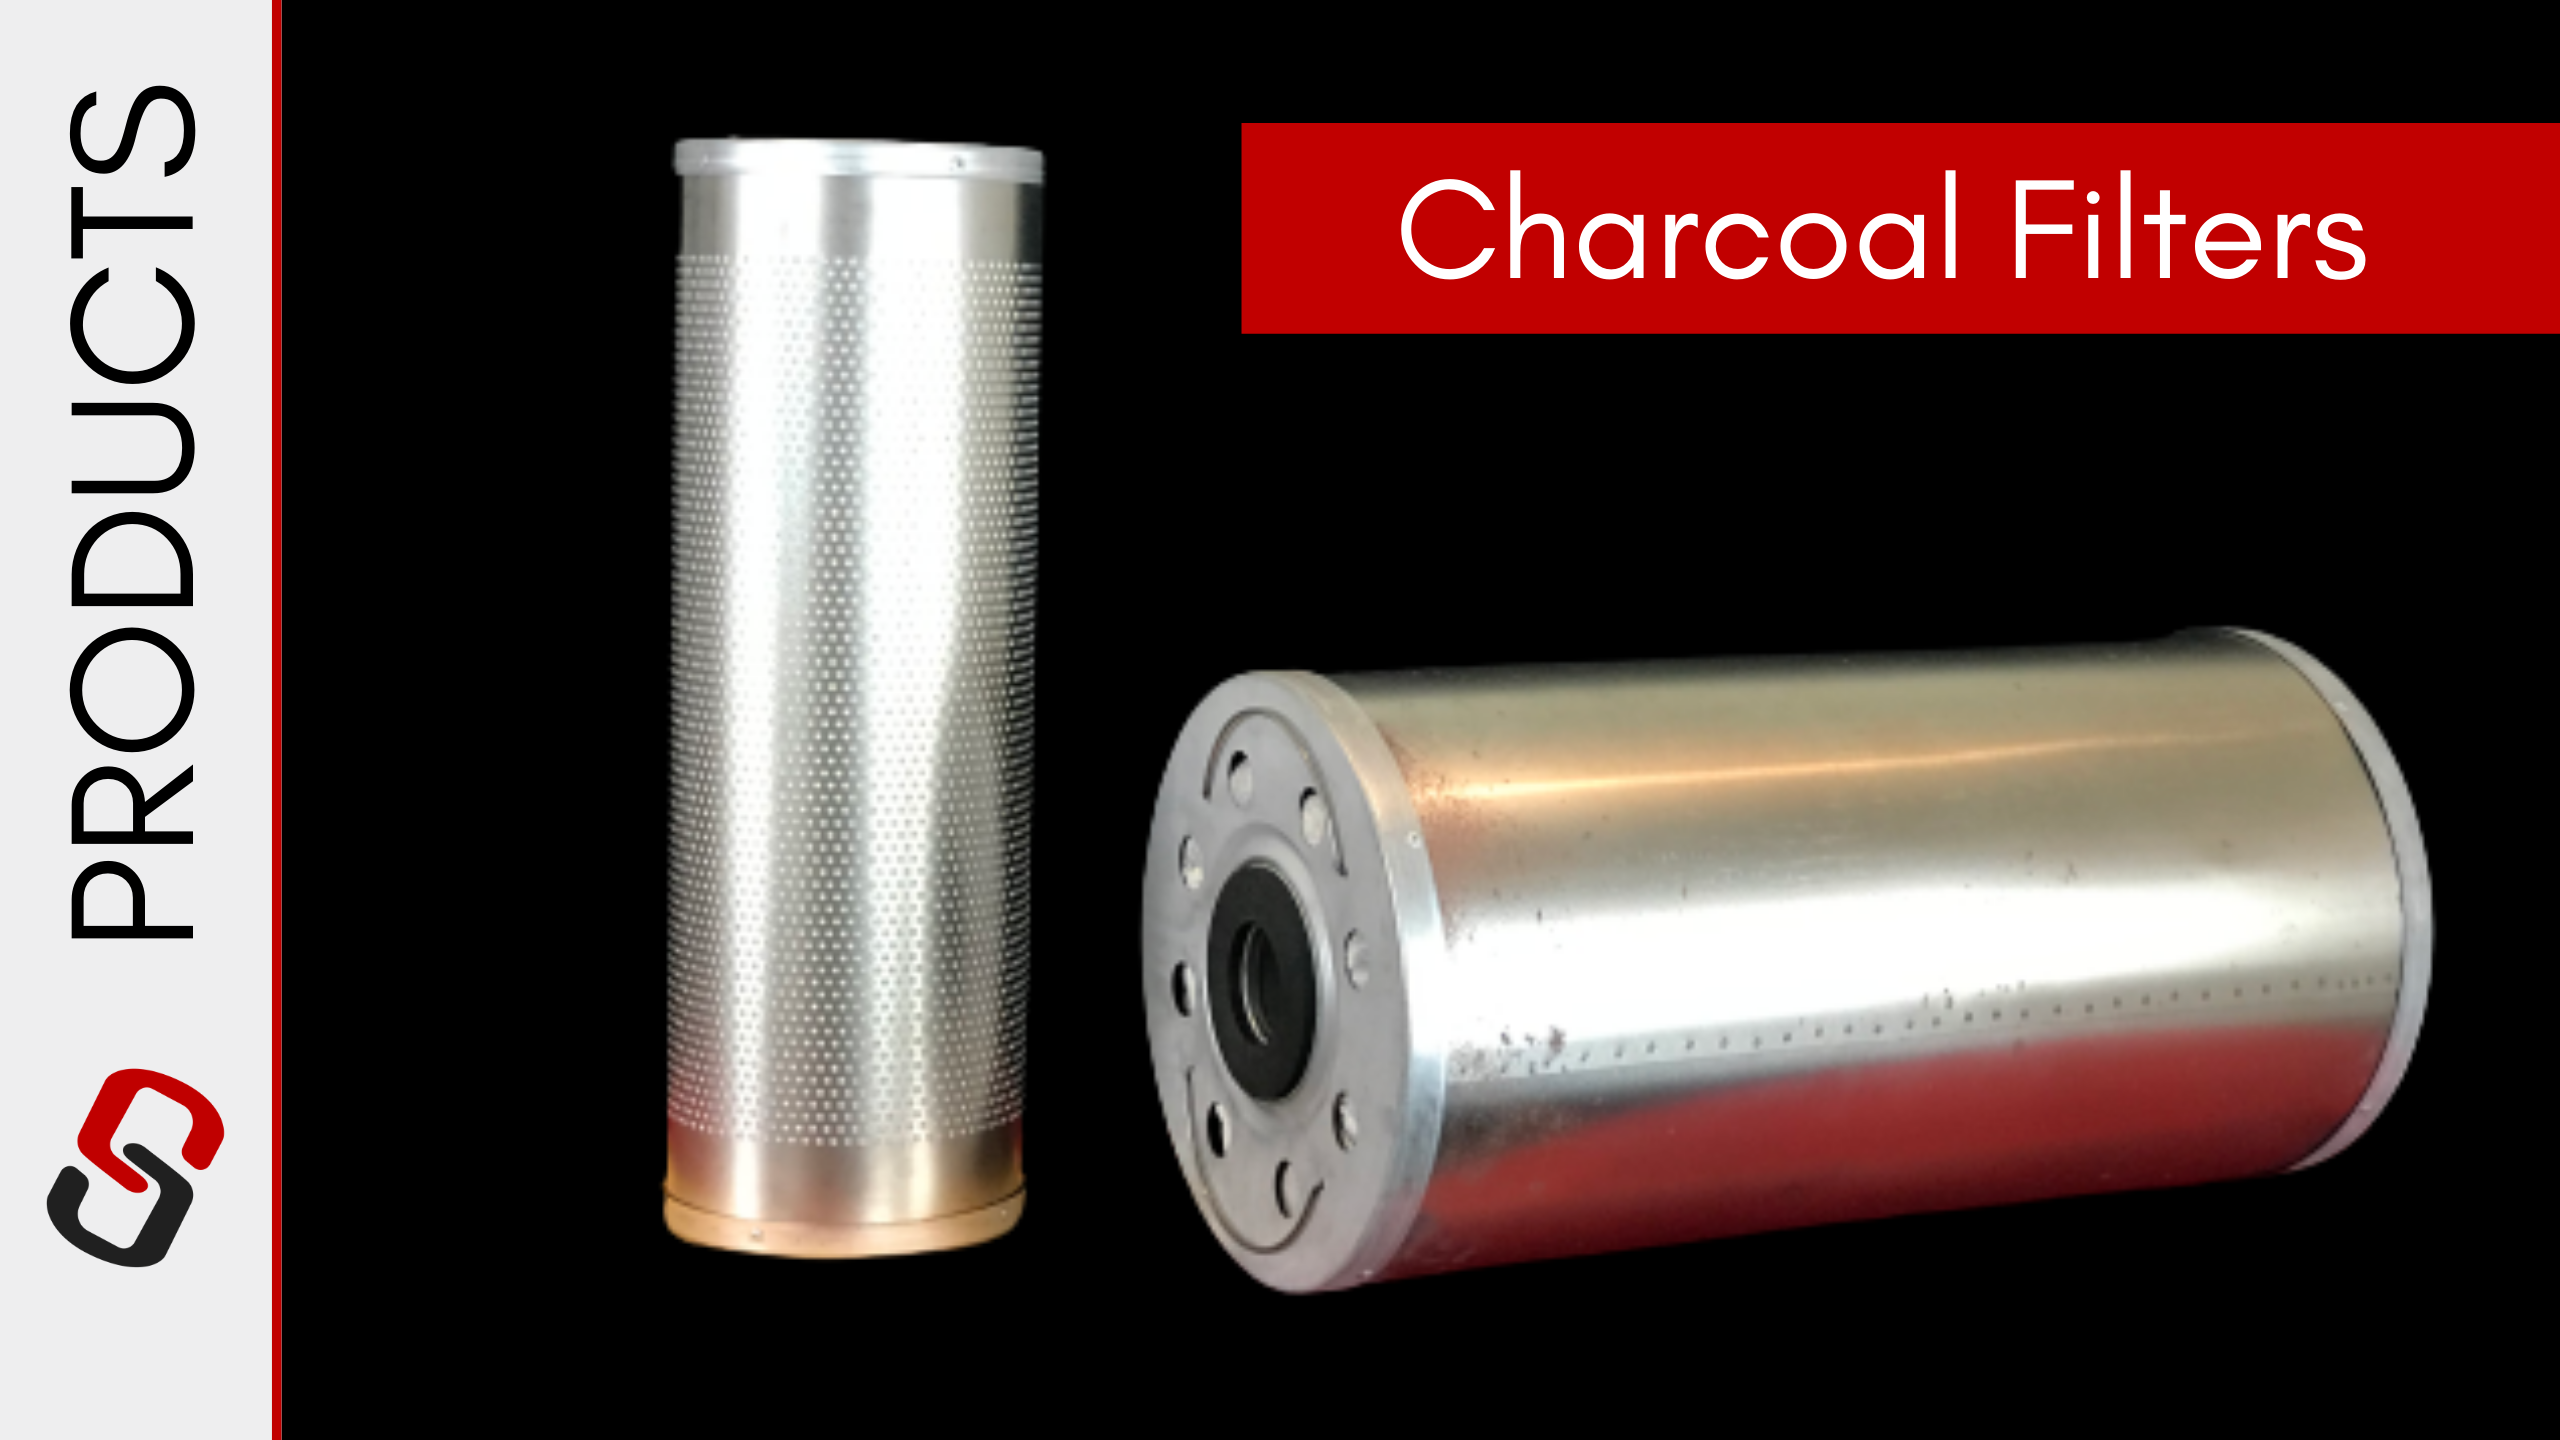 JRF / JVF Charcoal Filter | Product Video